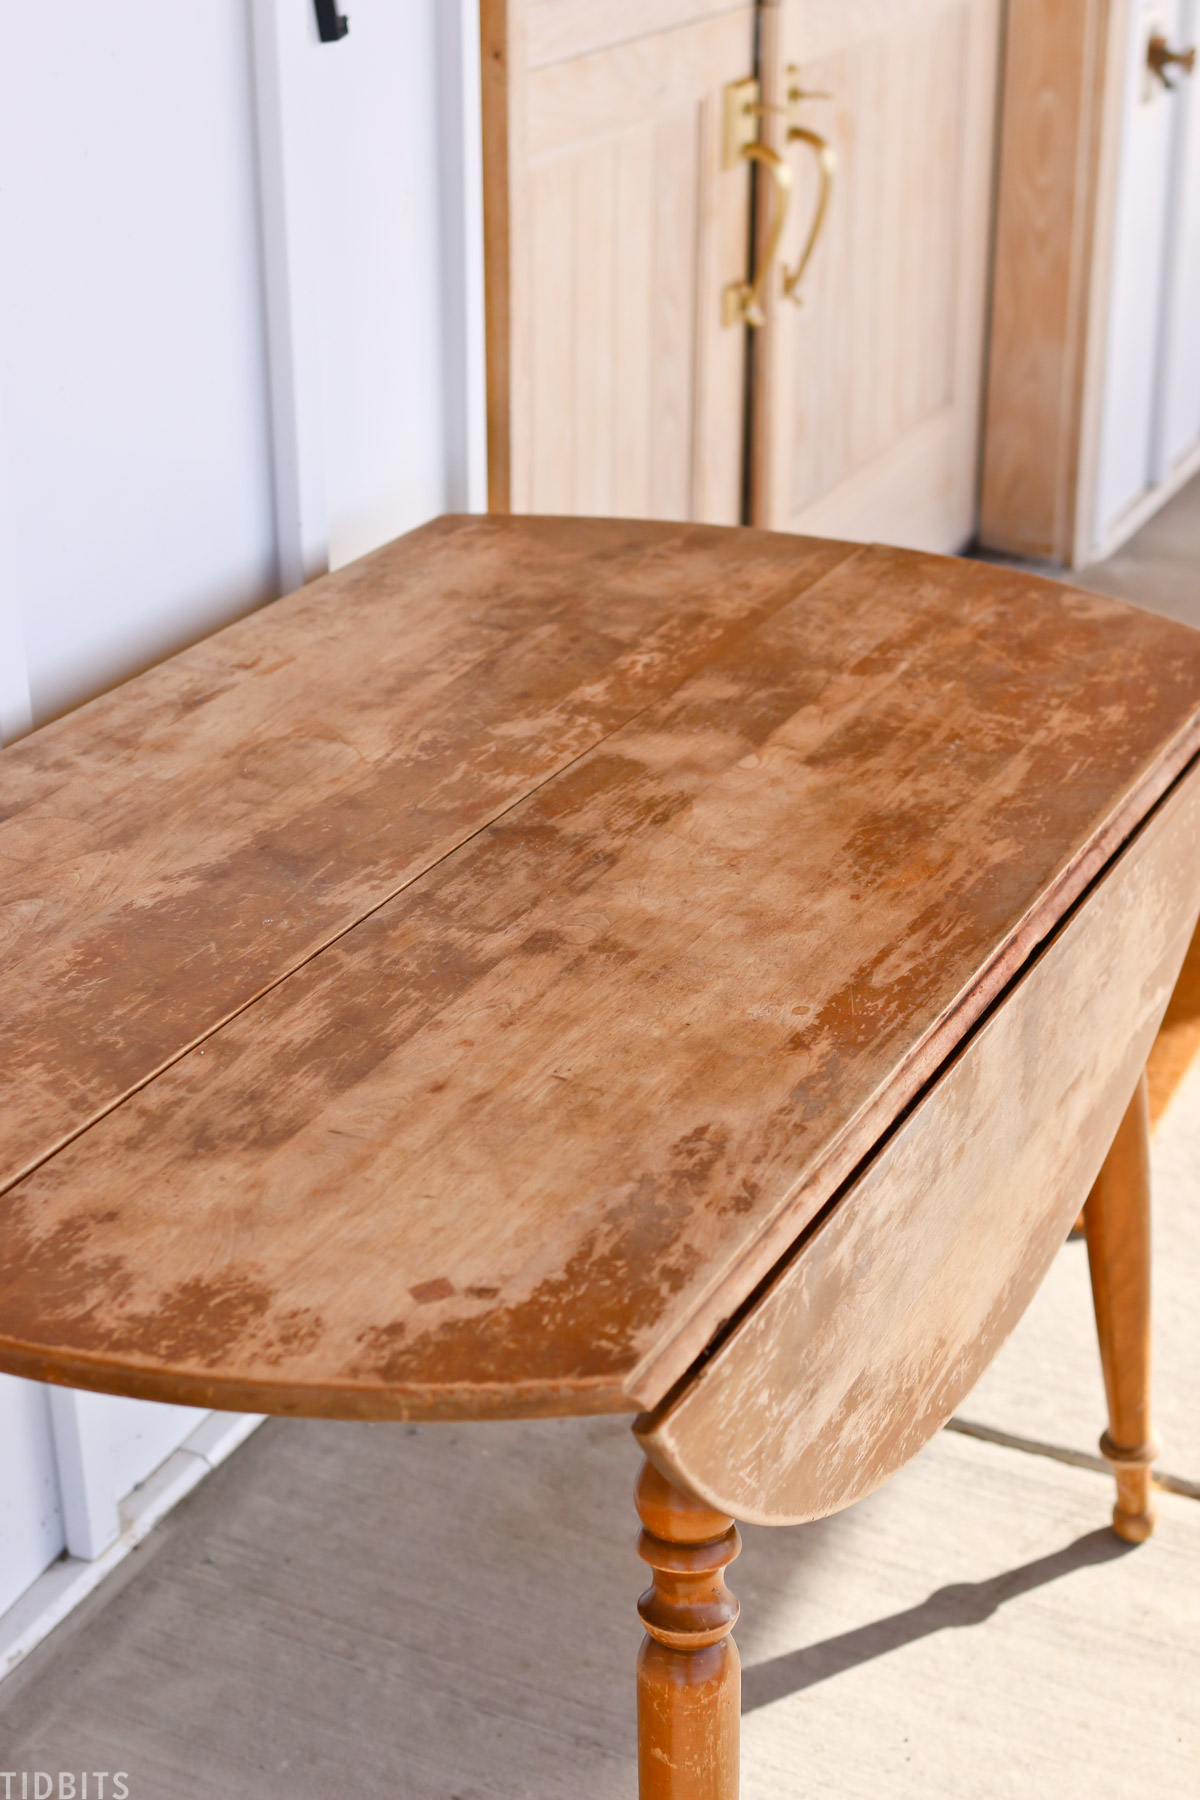 top view of antique drop leaf table sitting on front porch near front door